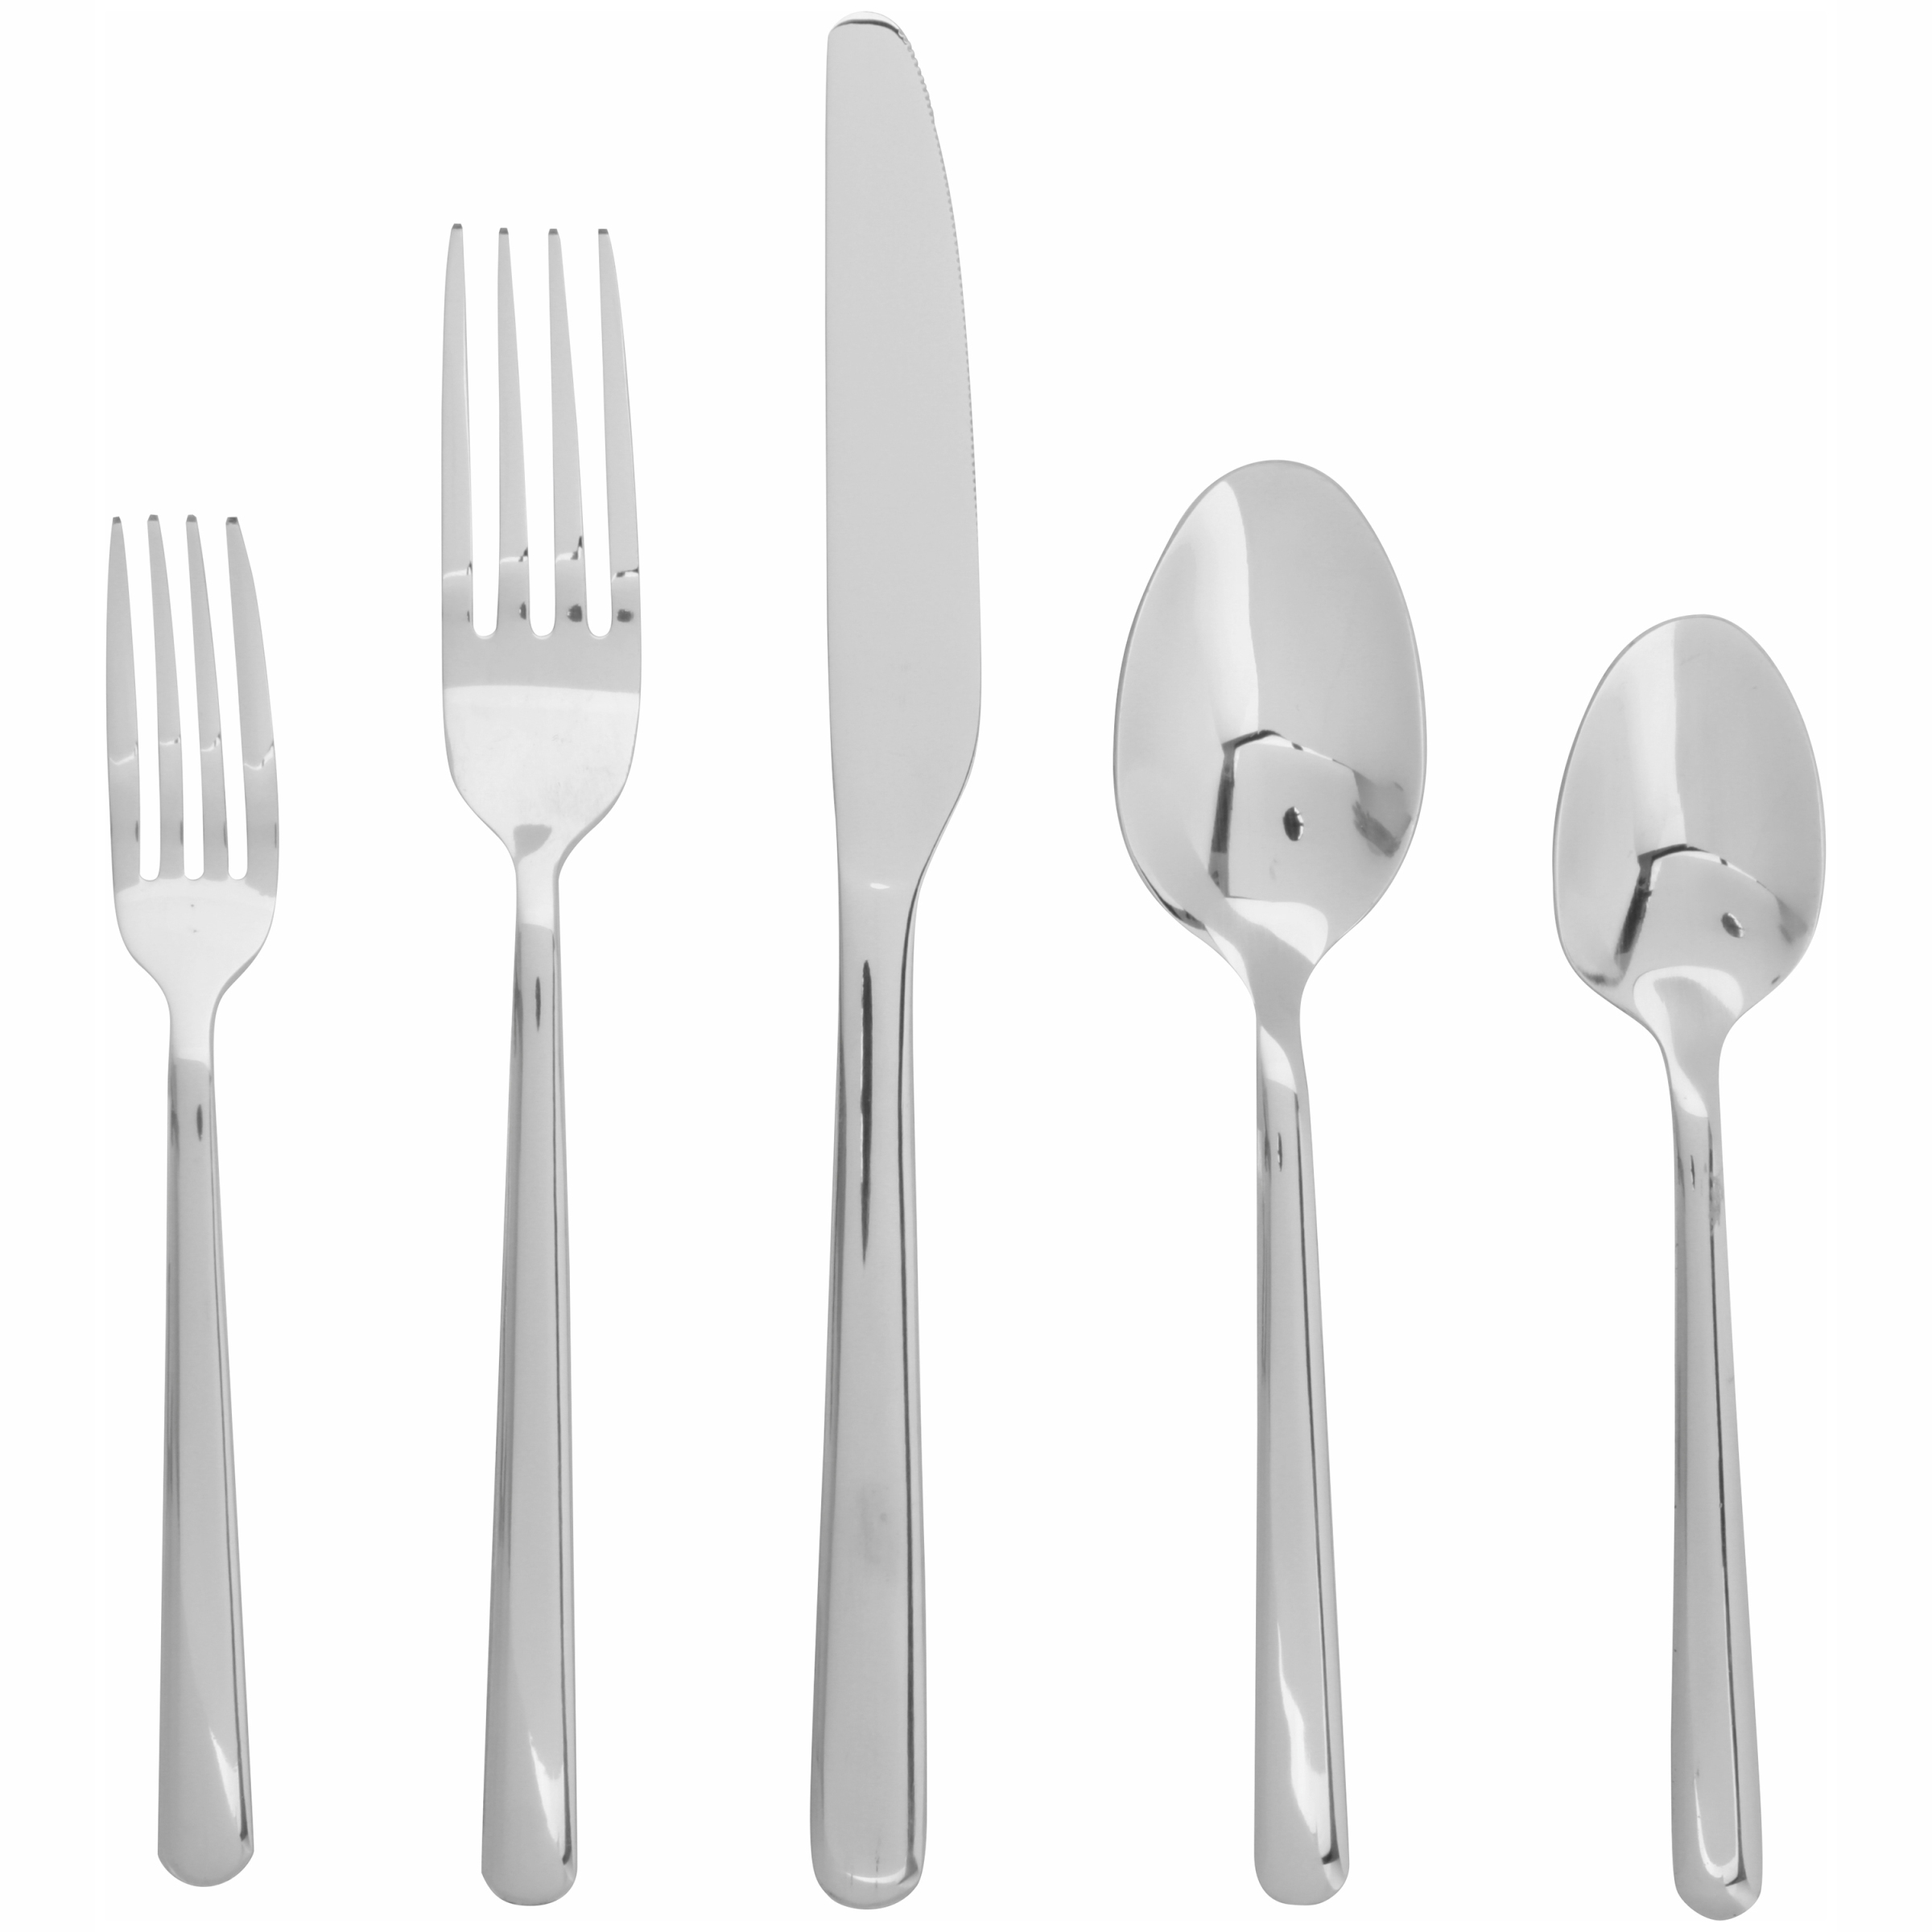 Better Homes & Garden Bryson 20 Piece Flatware Set by Wal-Mart Stores, Inc.